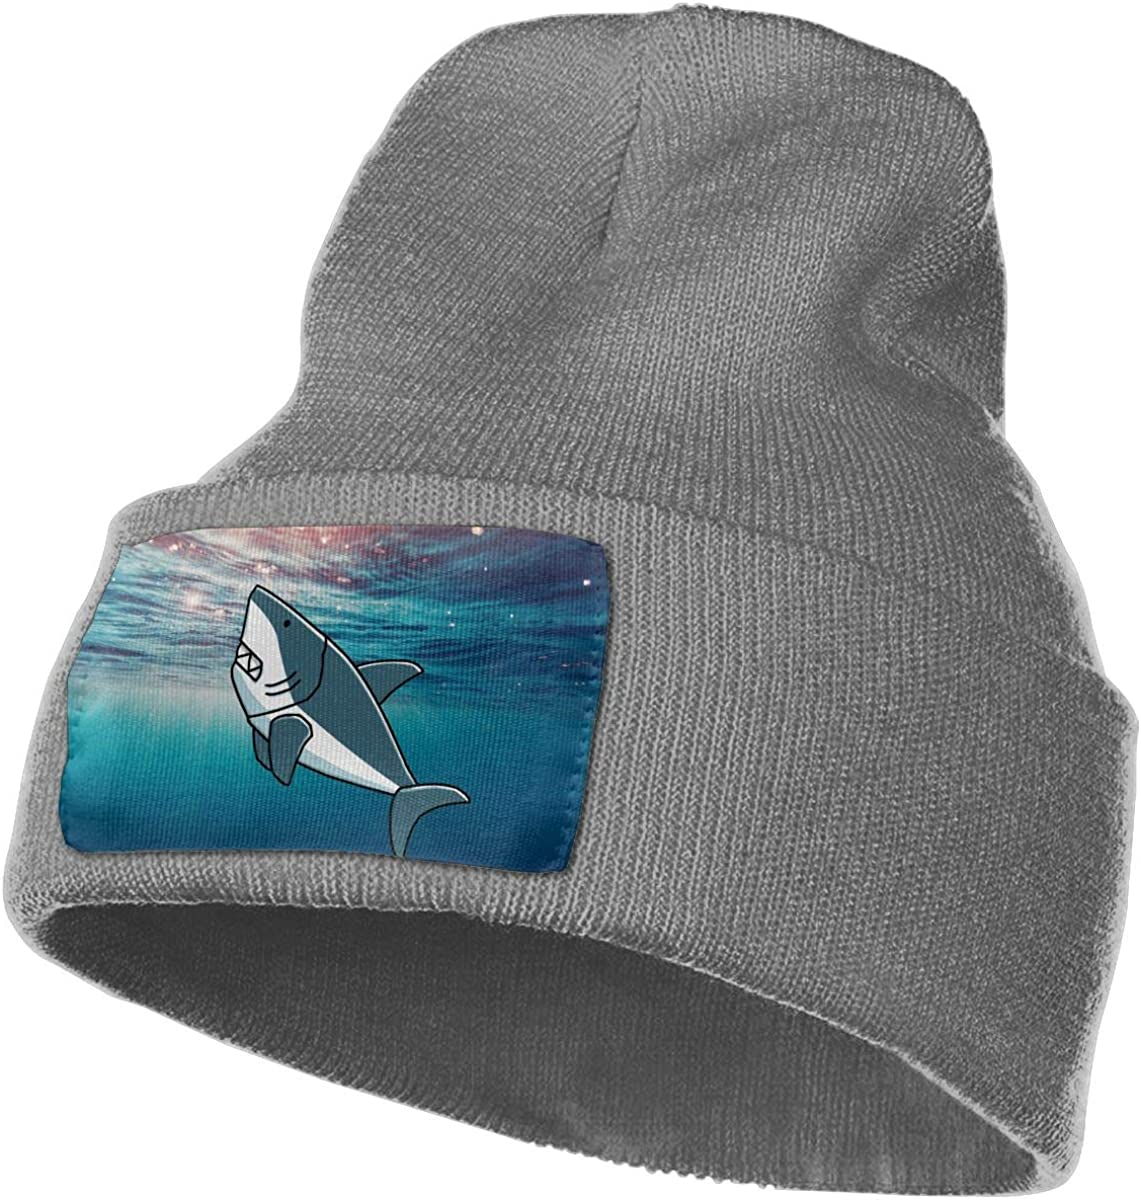 Free Kisses Shark Whale Cartoon Winter Beanie Hat Knit Hat Cap for for Men /& Women